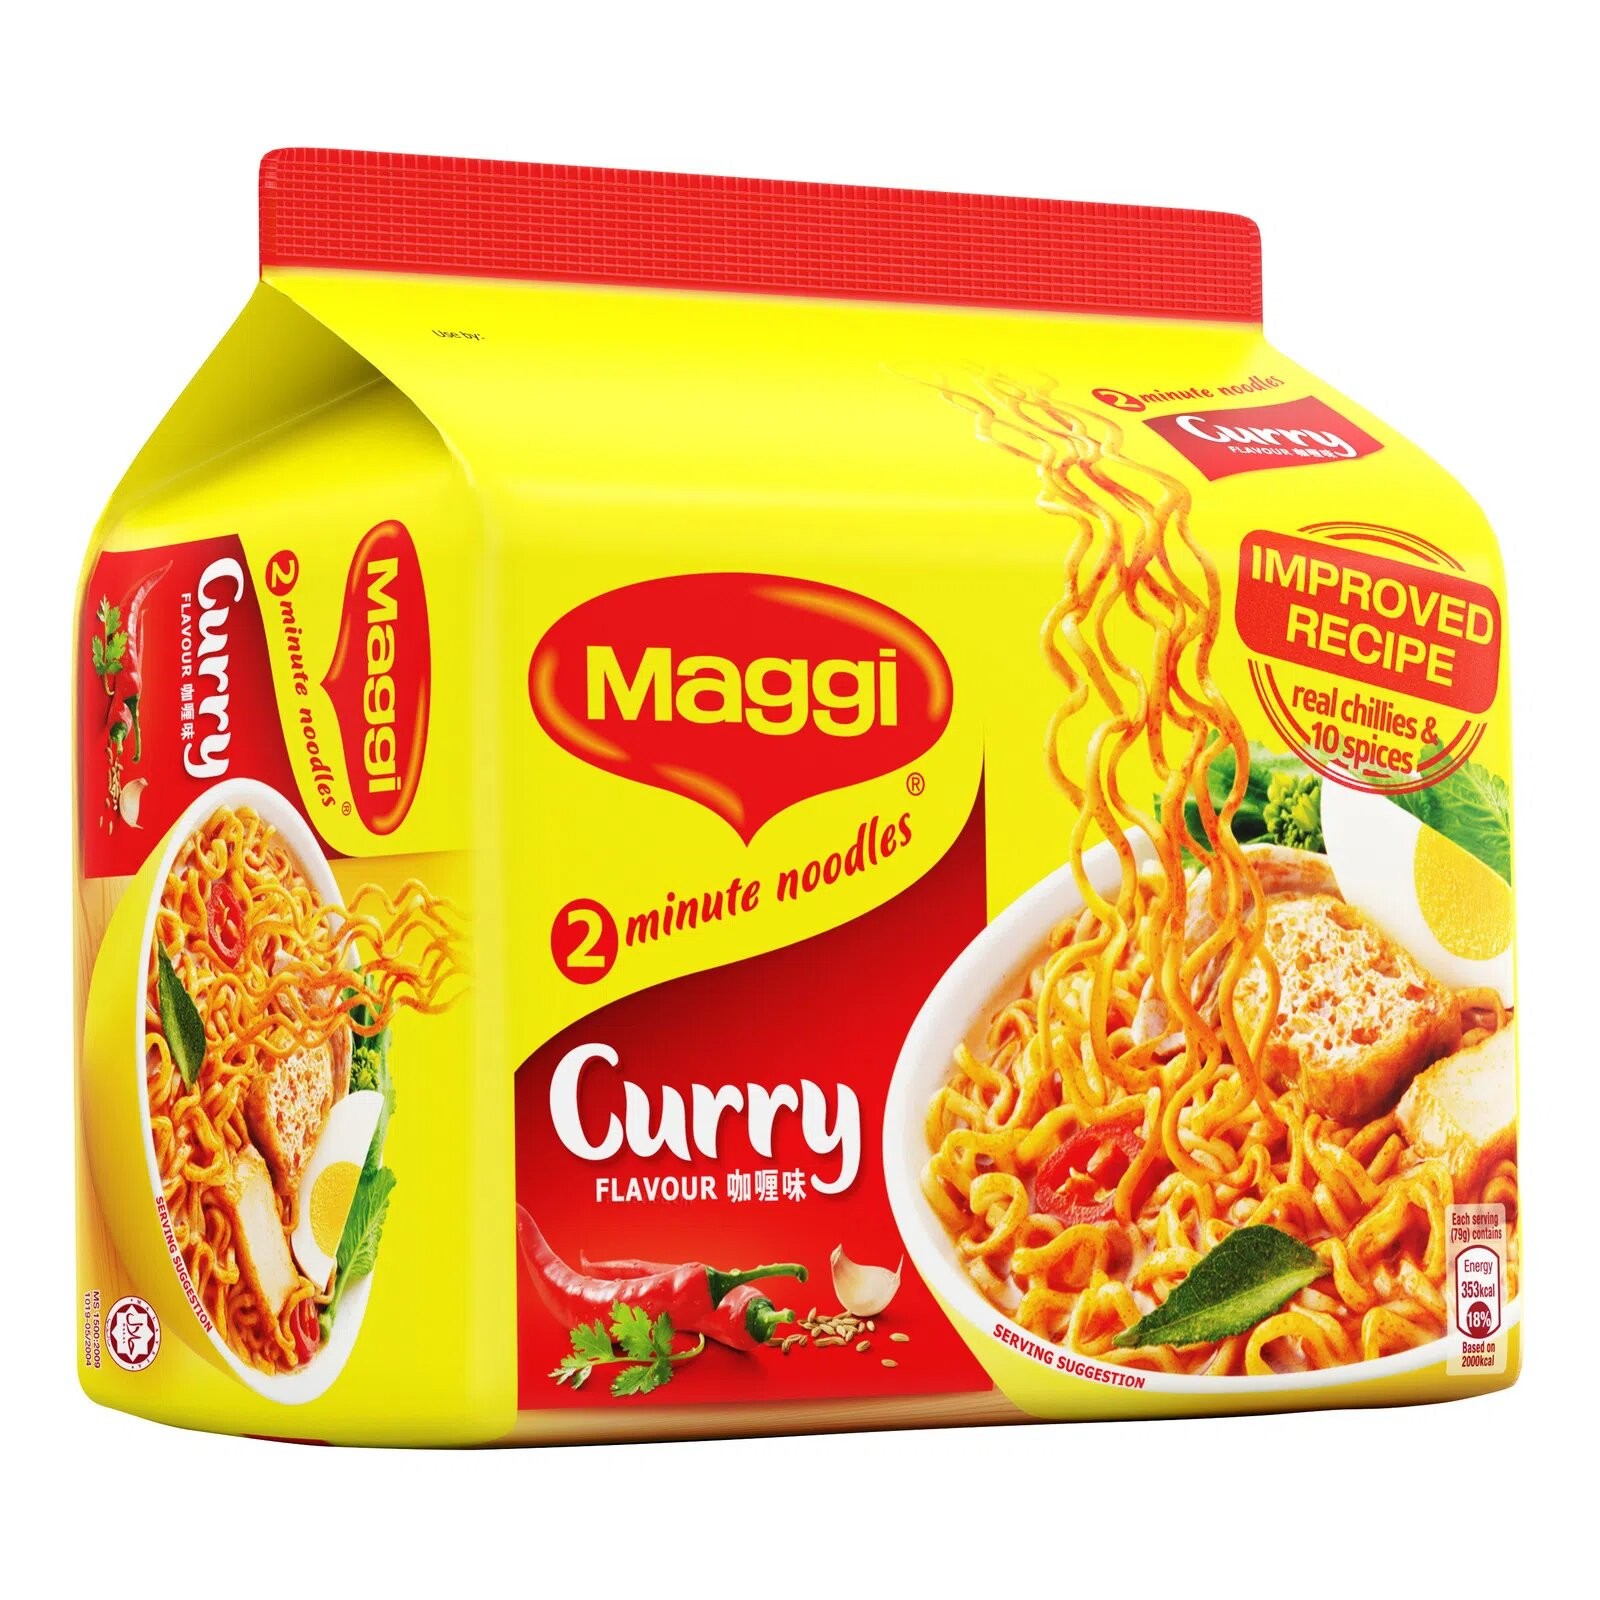 Maggi 2-Minute Instant Noodles - Curry